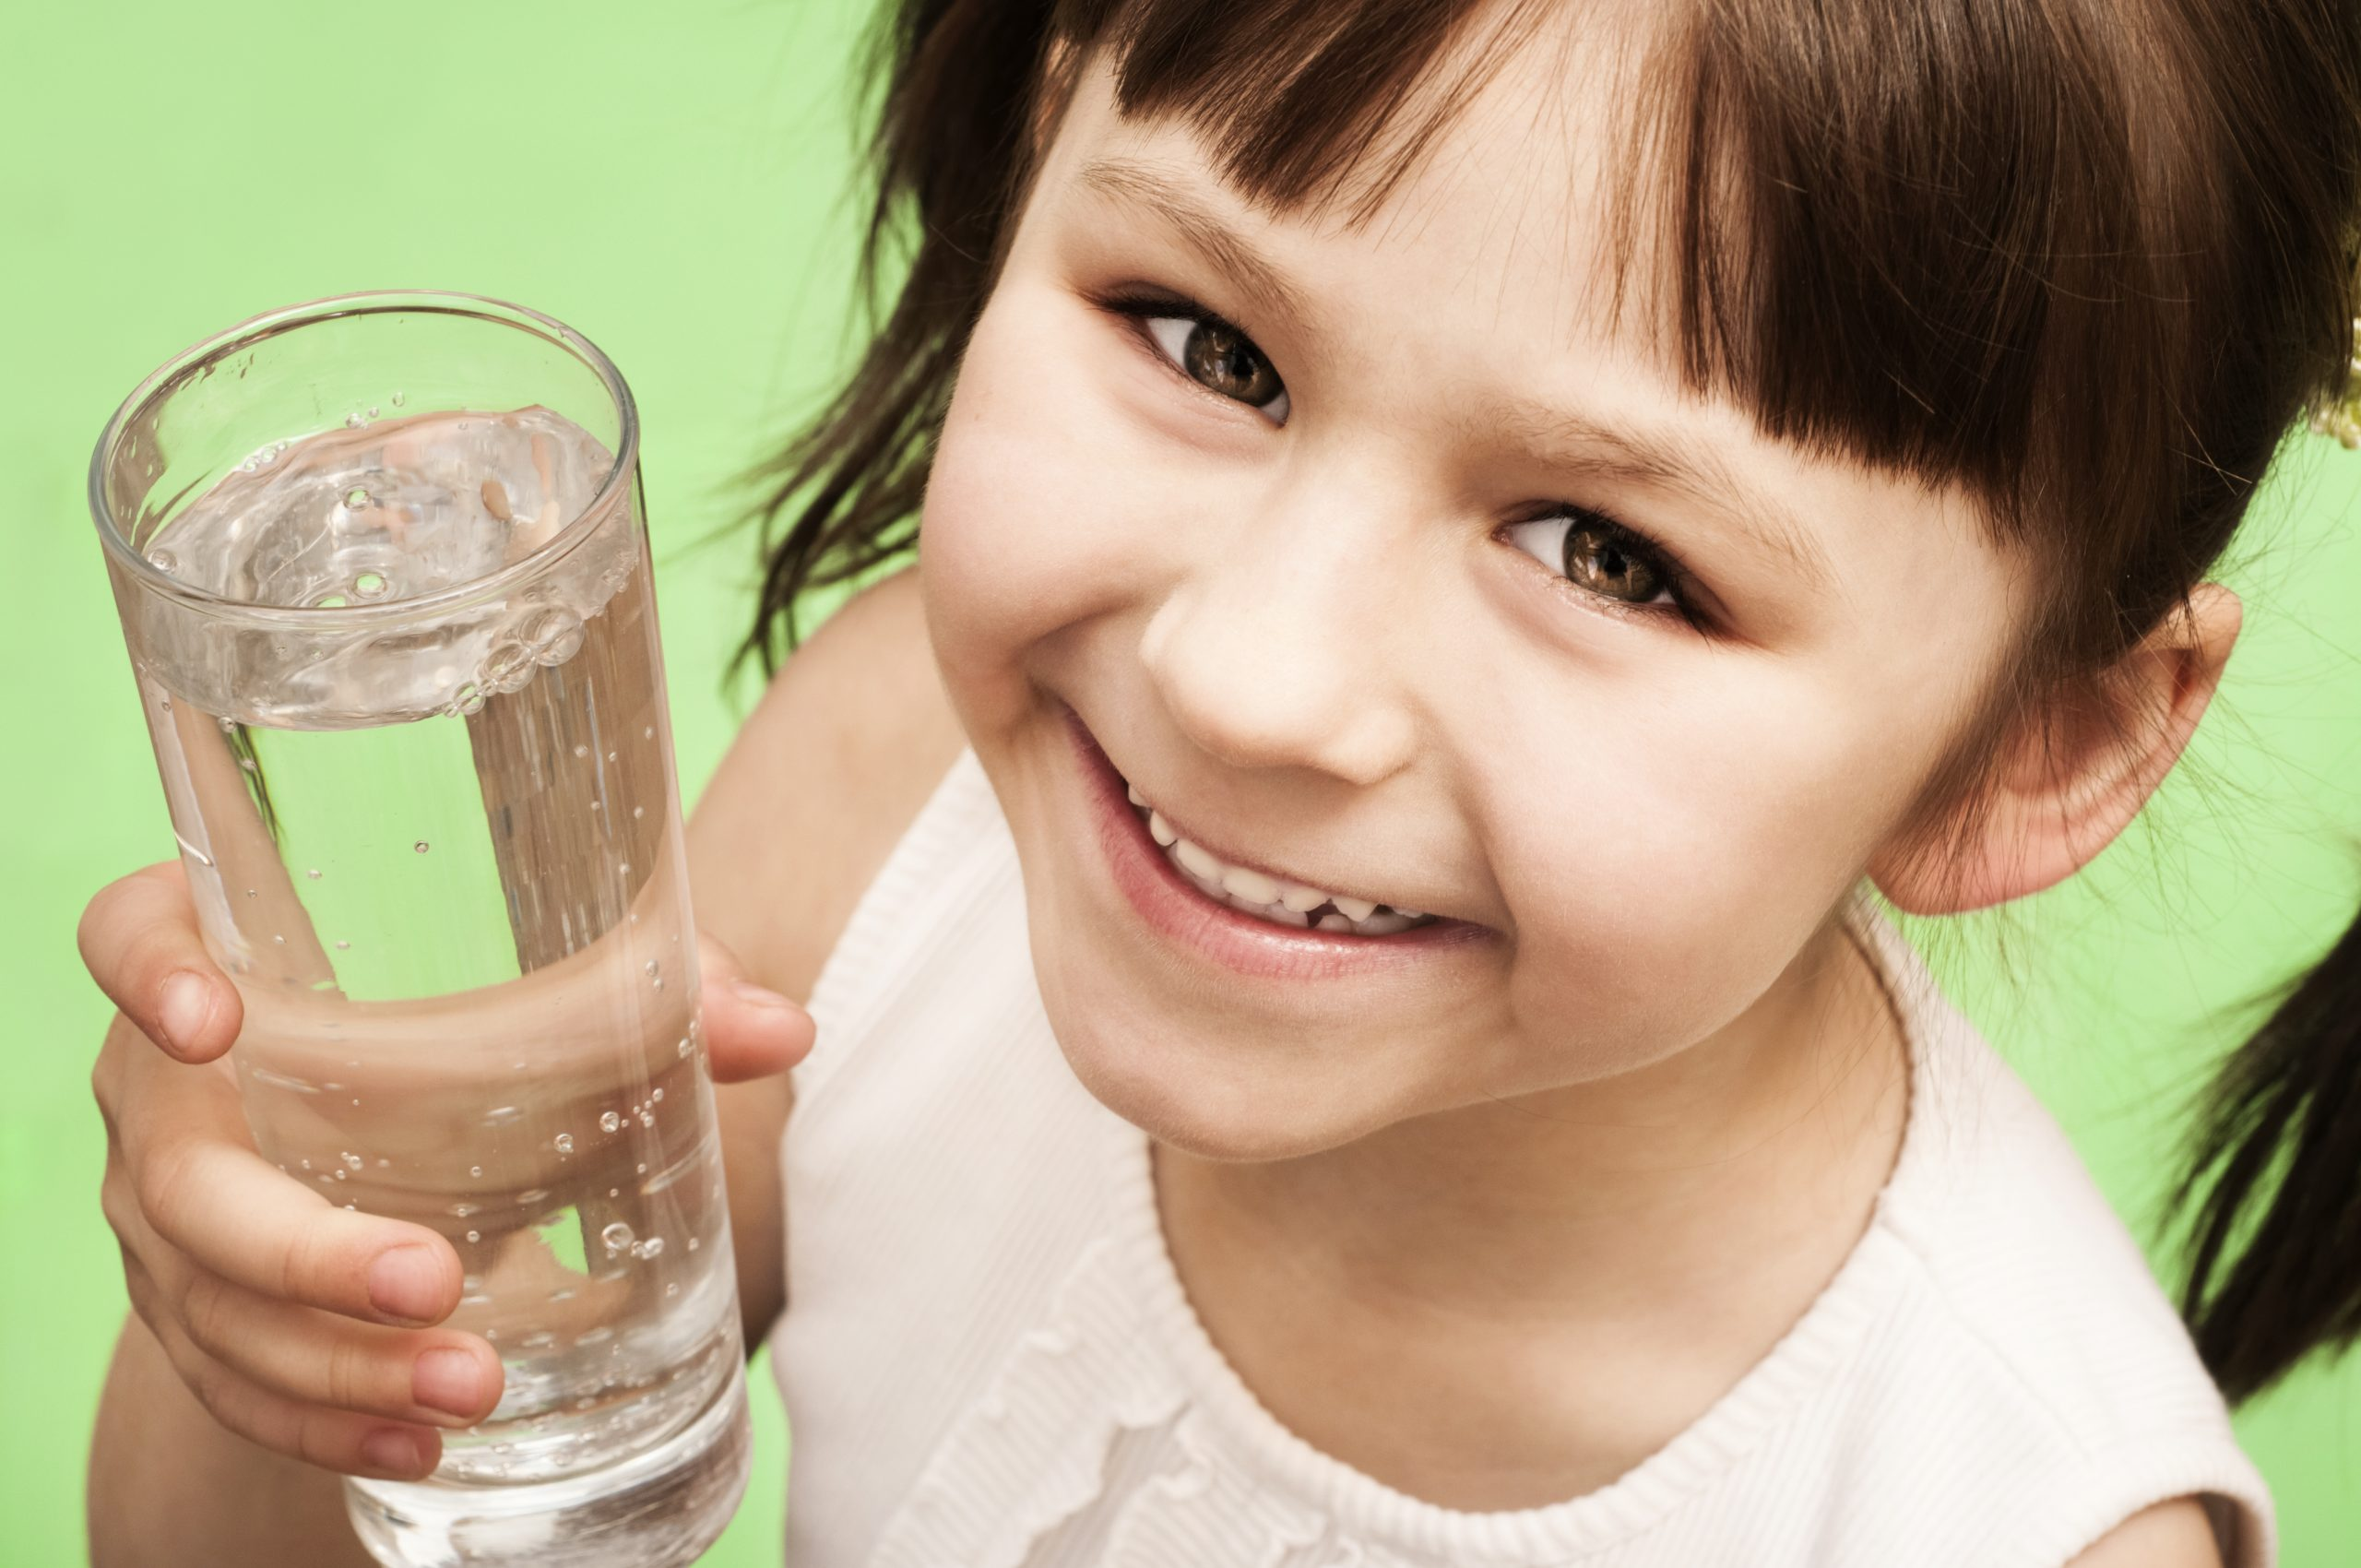 Portrait of a little girl with glass of water